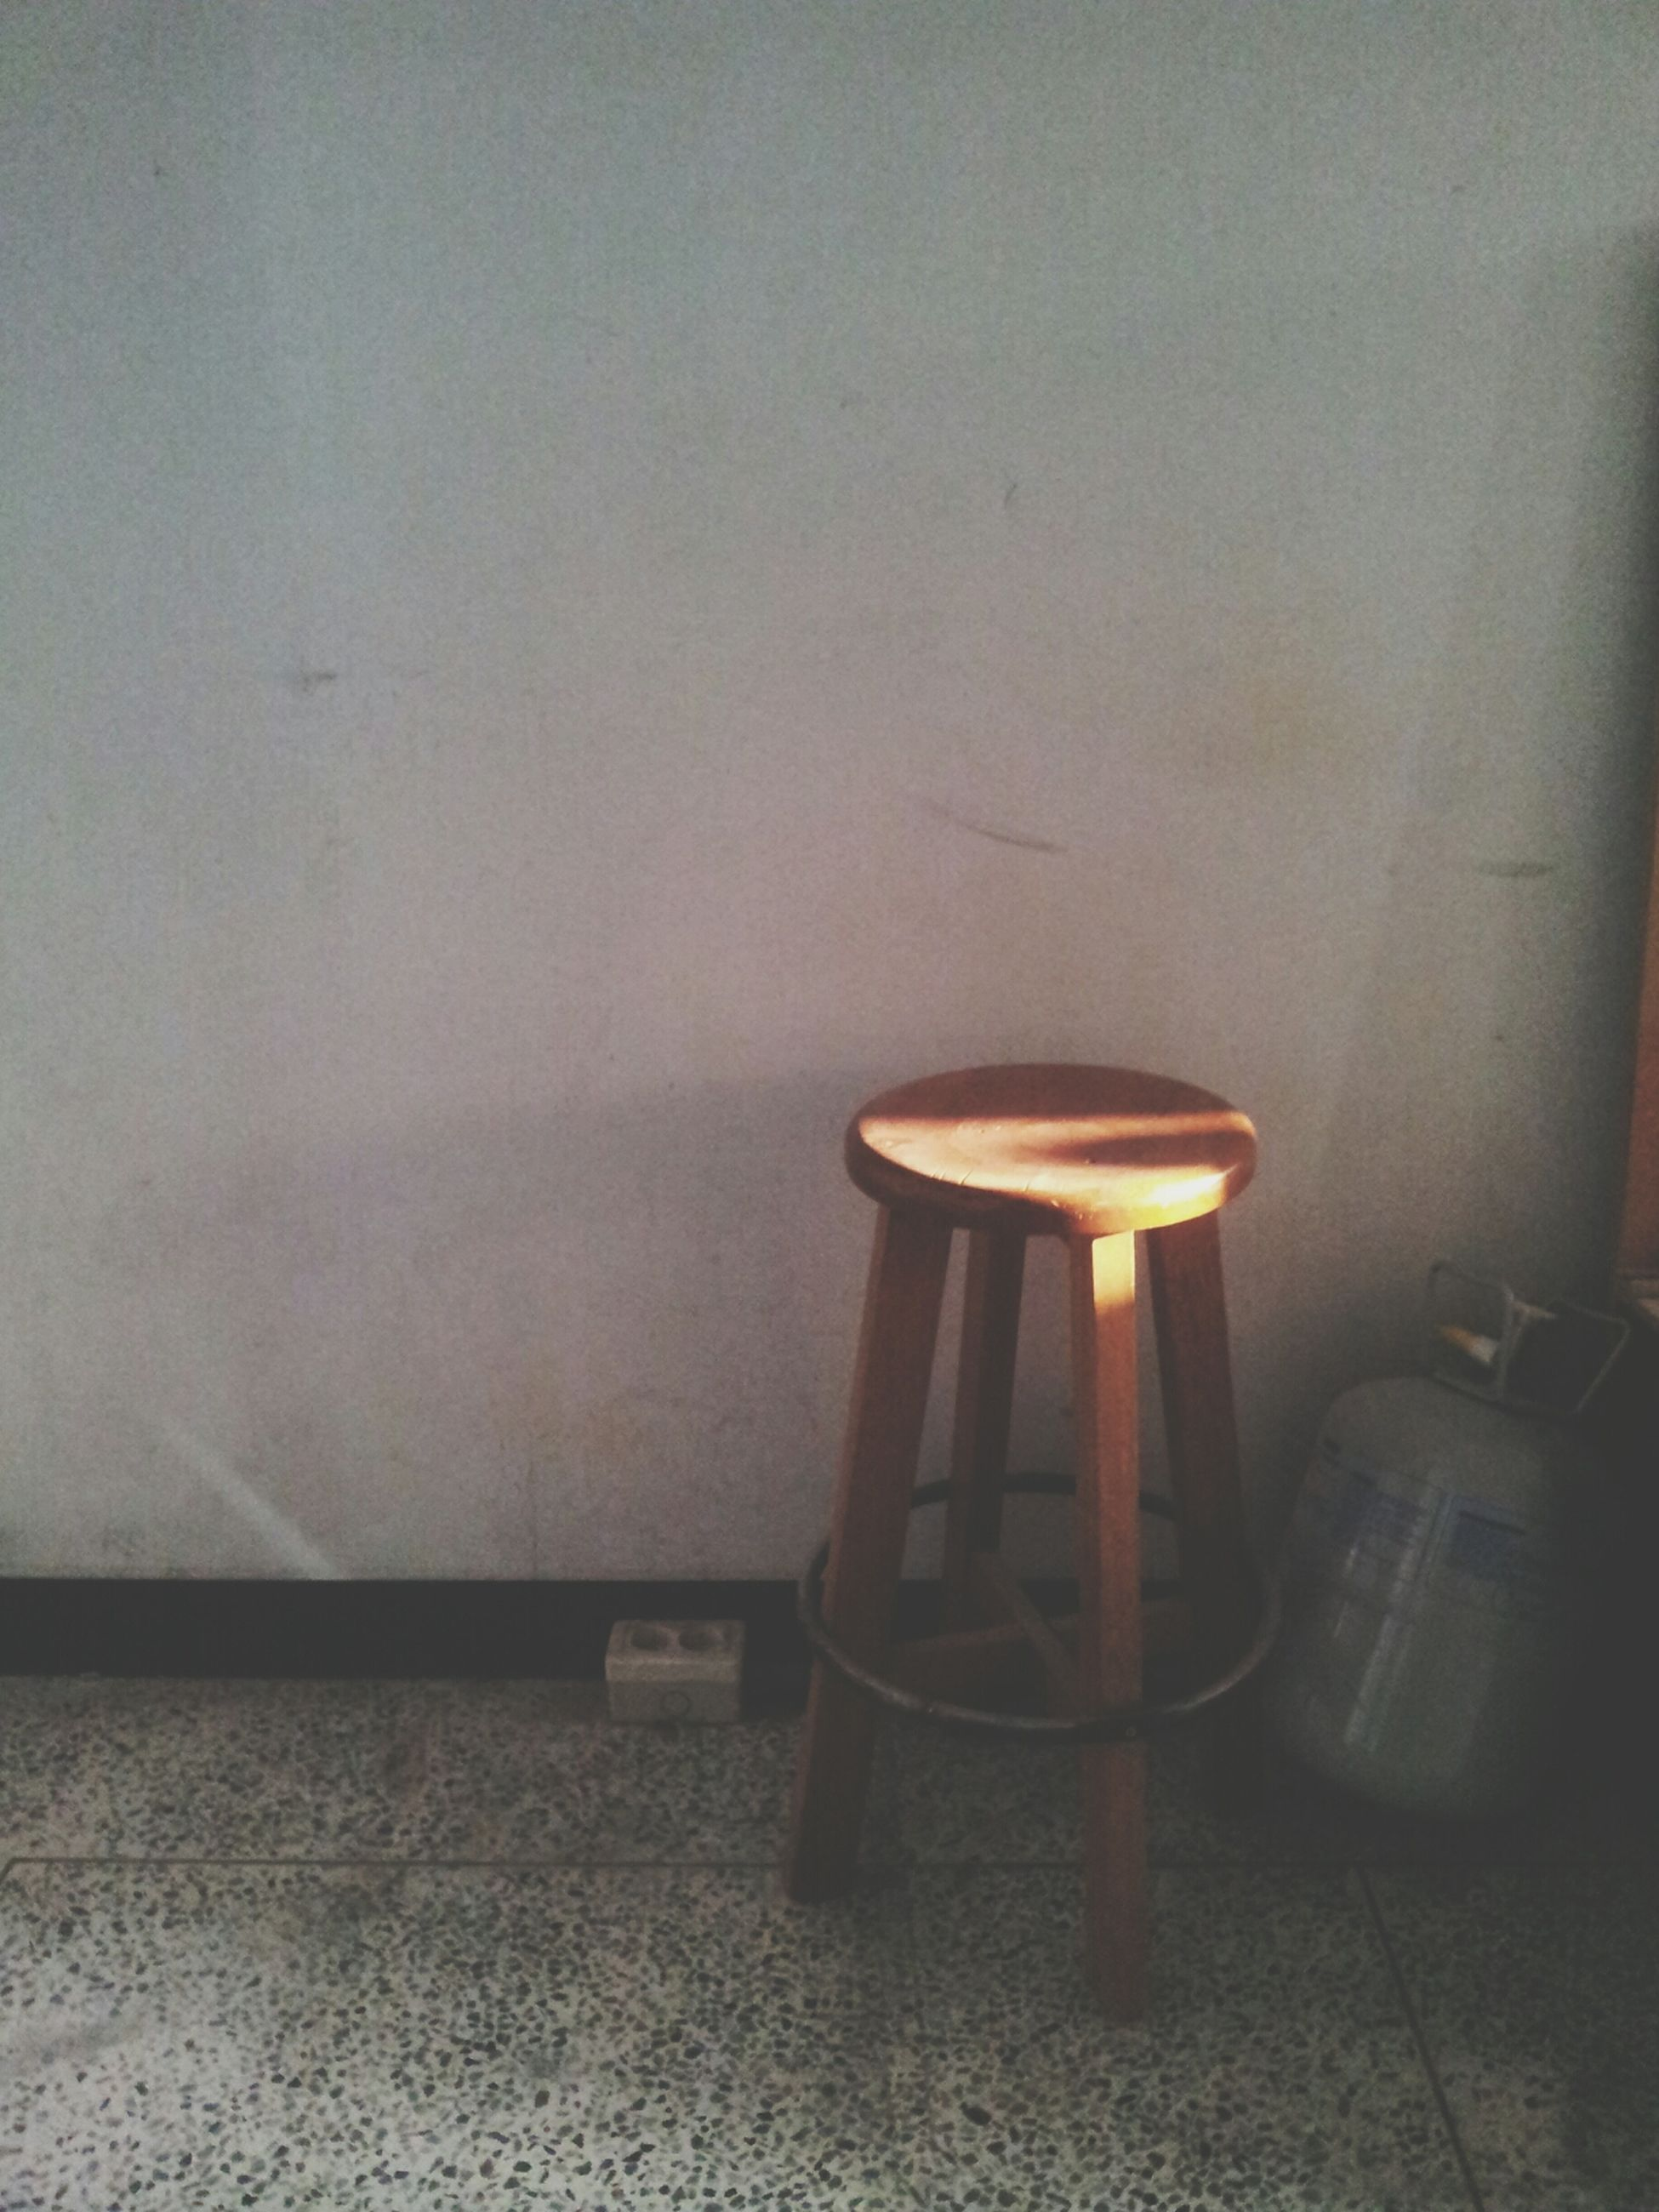 indoors, lighting equipment, illuminated, chair, wall - building feature, absence, architecture, home interior, built structure, table, electric lamp, empty, no people, lamp, wall, electric light, light - natural phenomenon, electricity, sunlight, still life